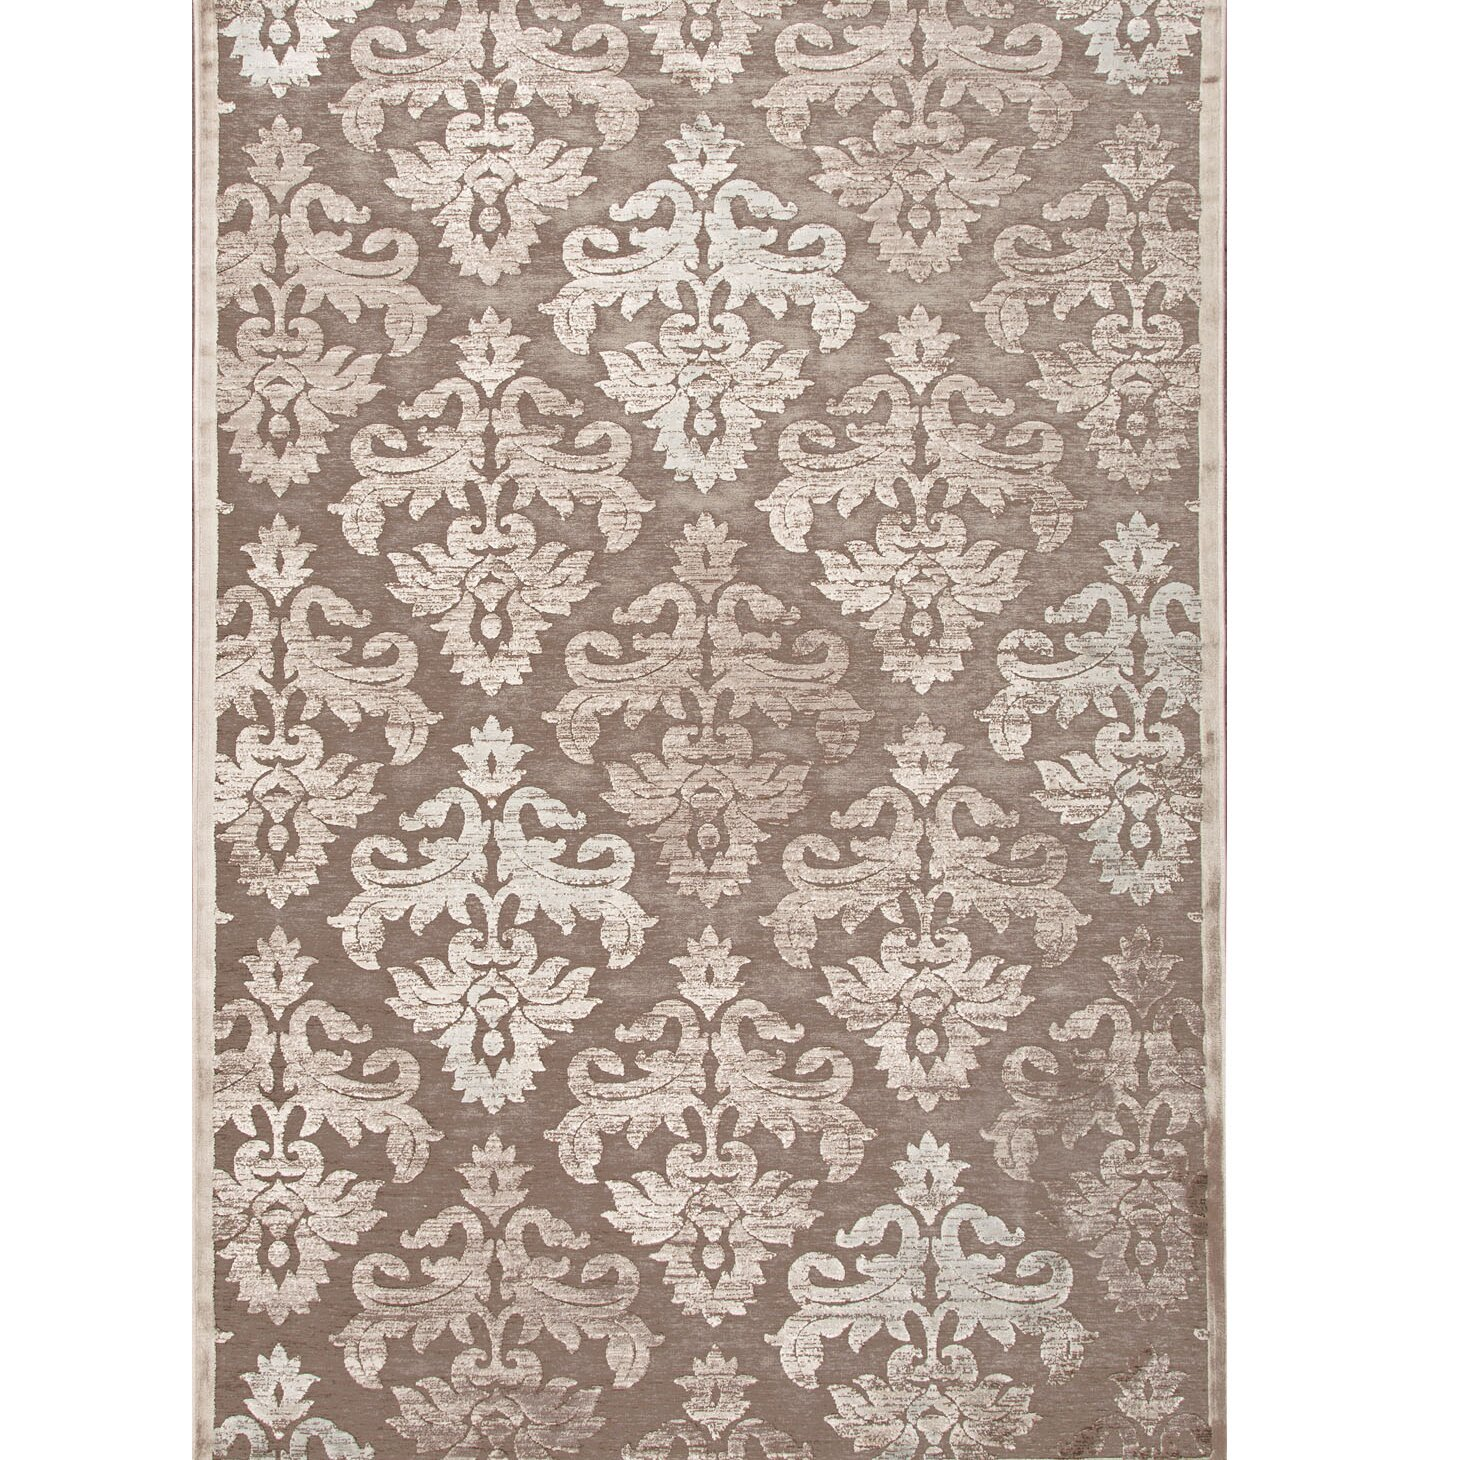 tufted area rugs the conestoga trading co tufted brown area rug 2958